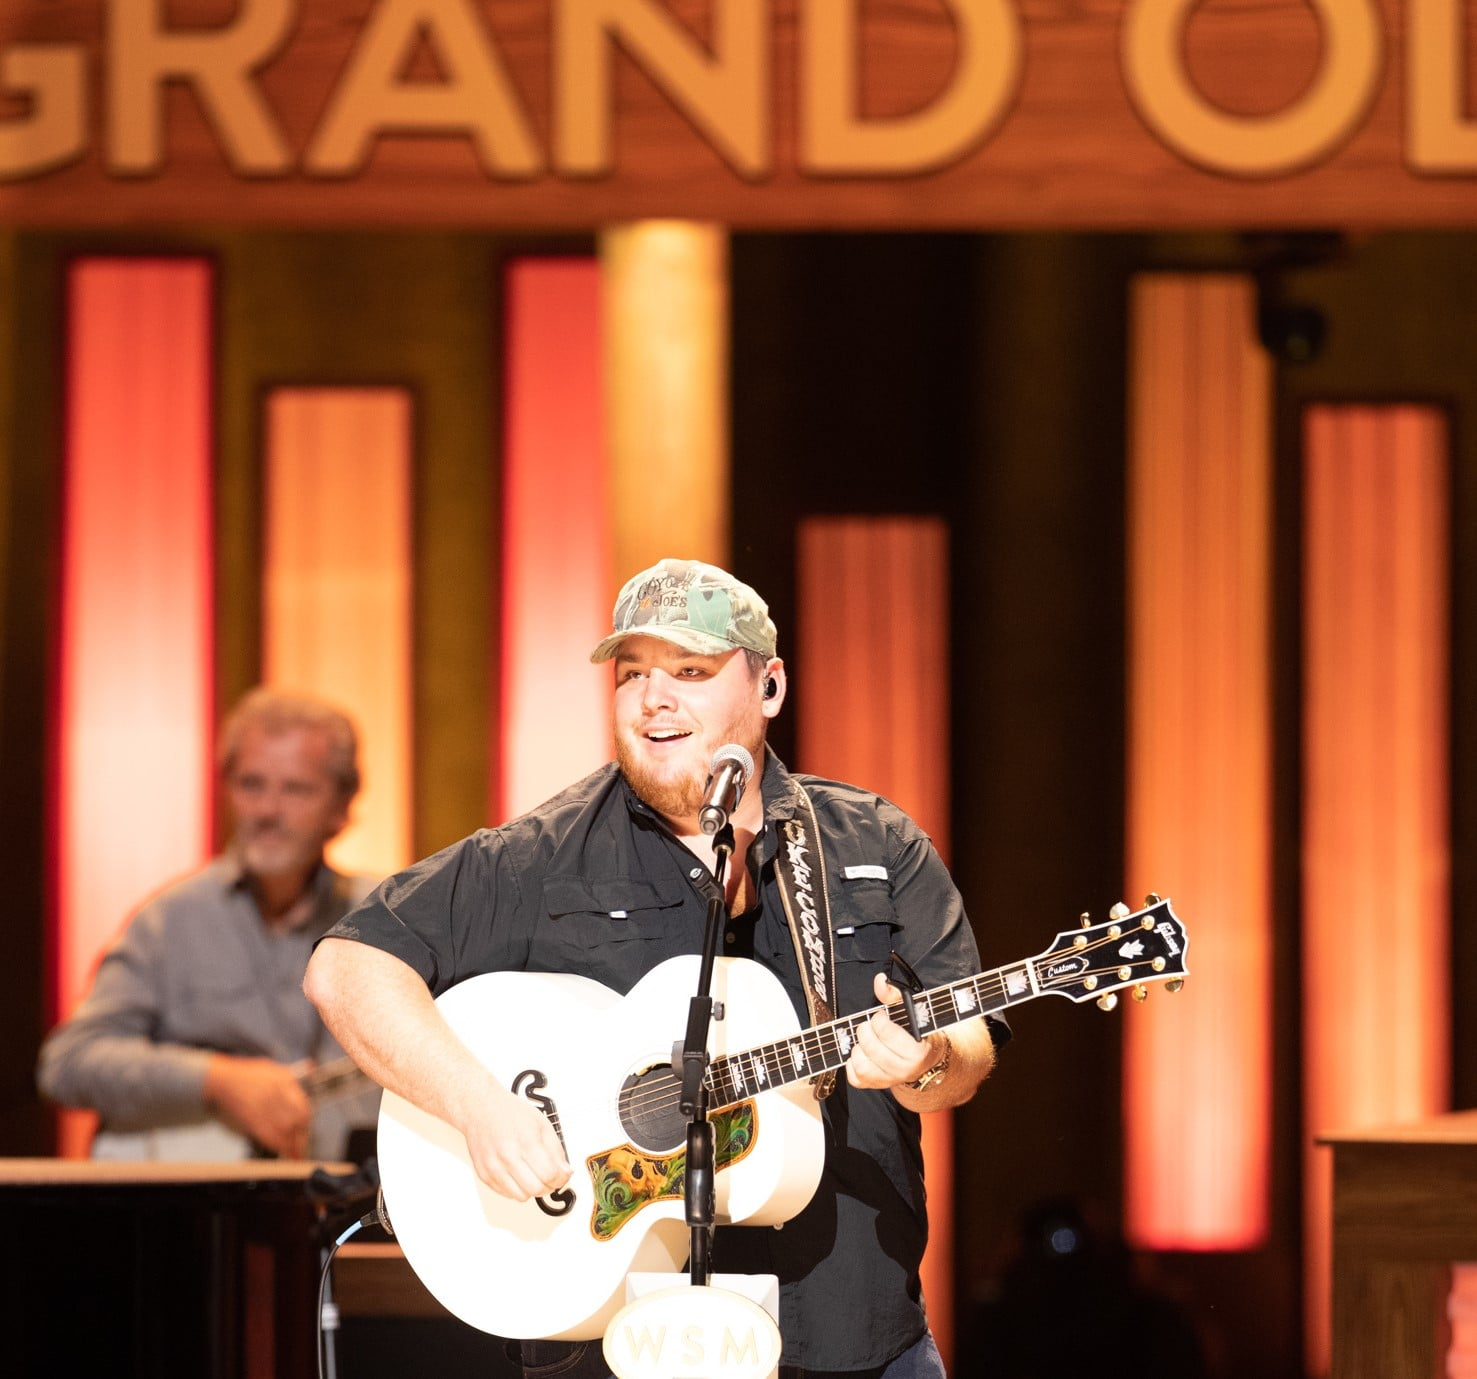 Luke Combs to be inducted into the Grand Ole Opry tonight